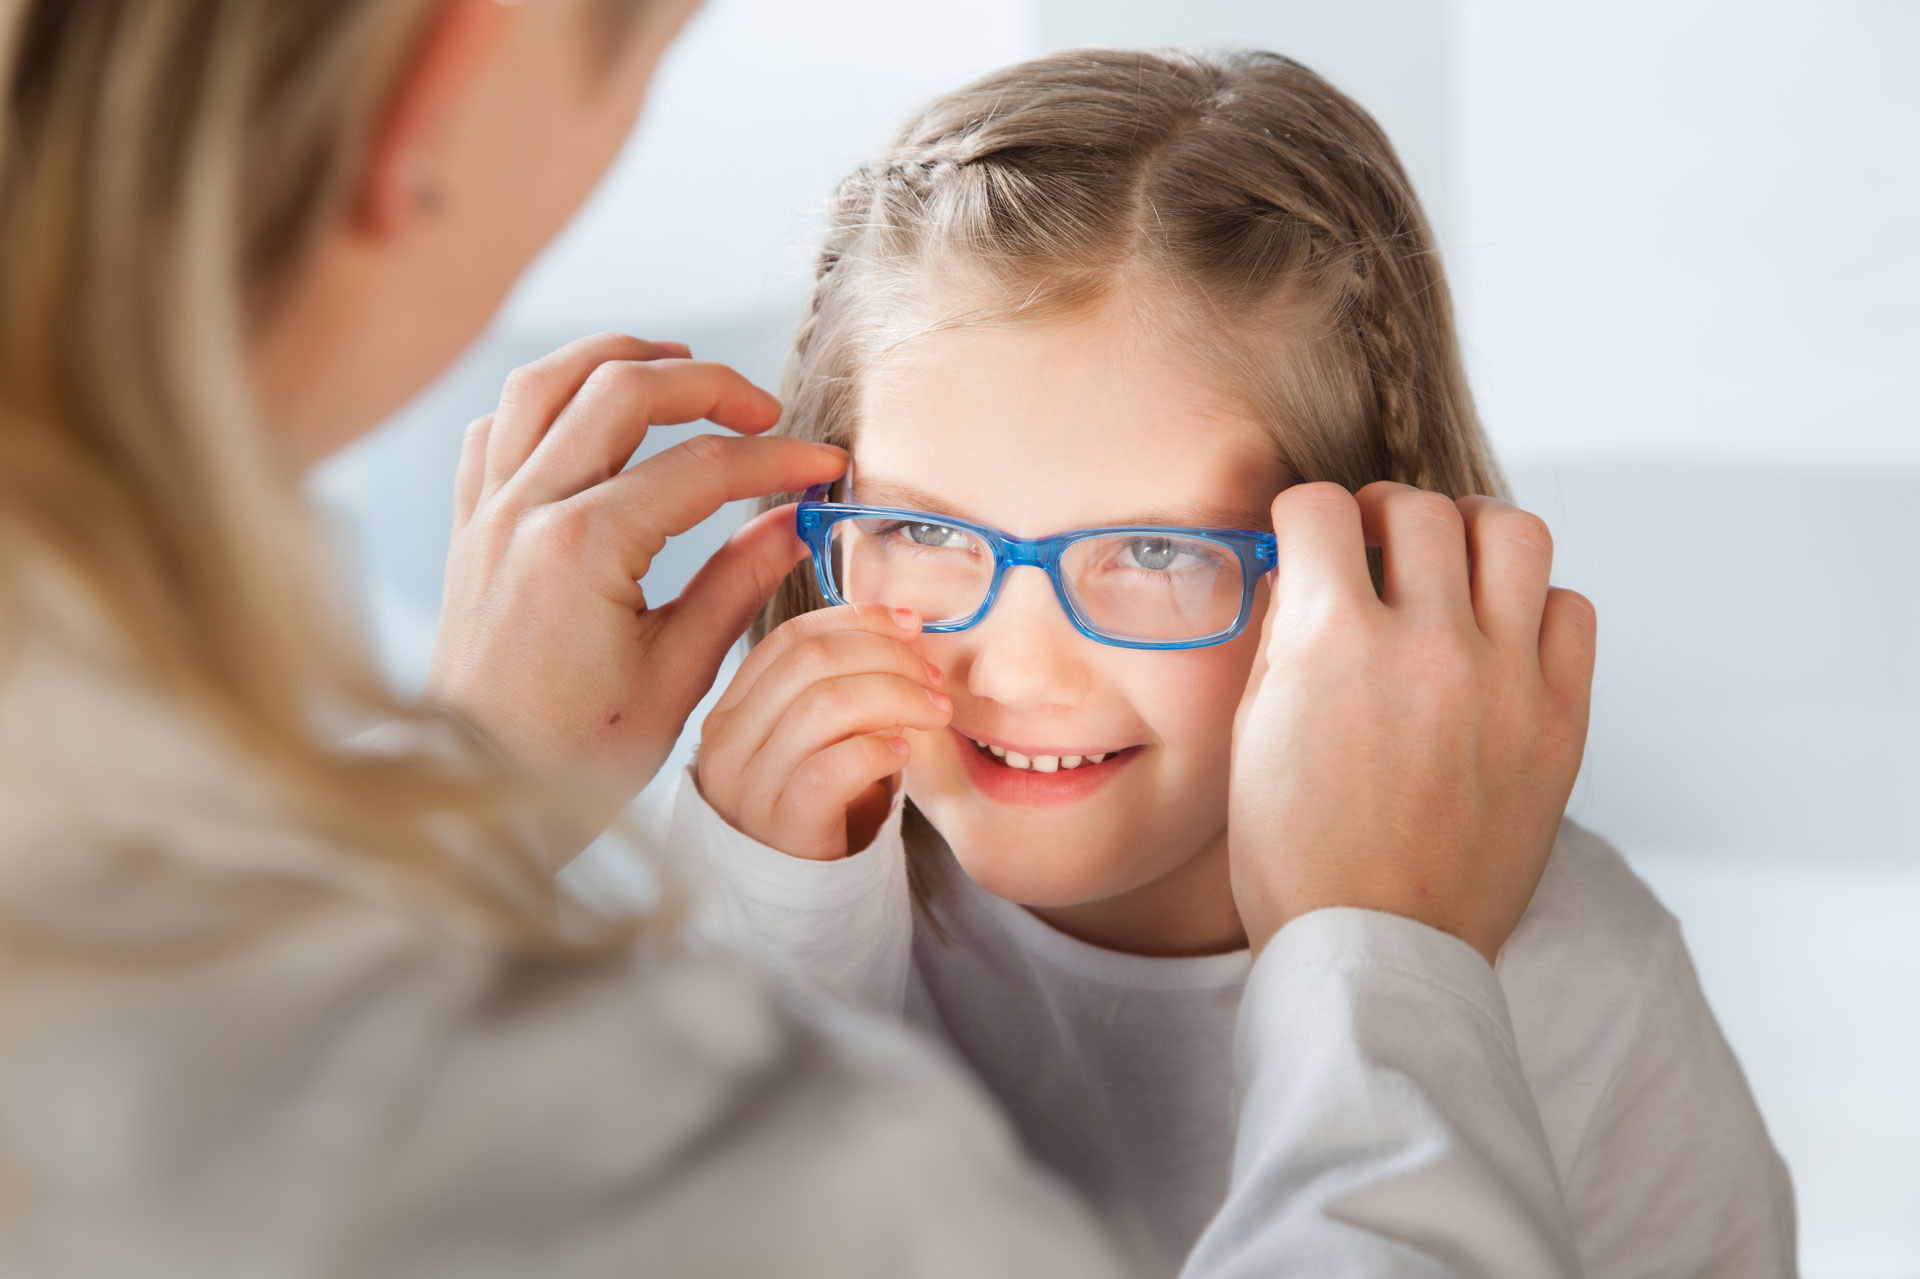 d61c725c9c3d The right spectacle frames for children